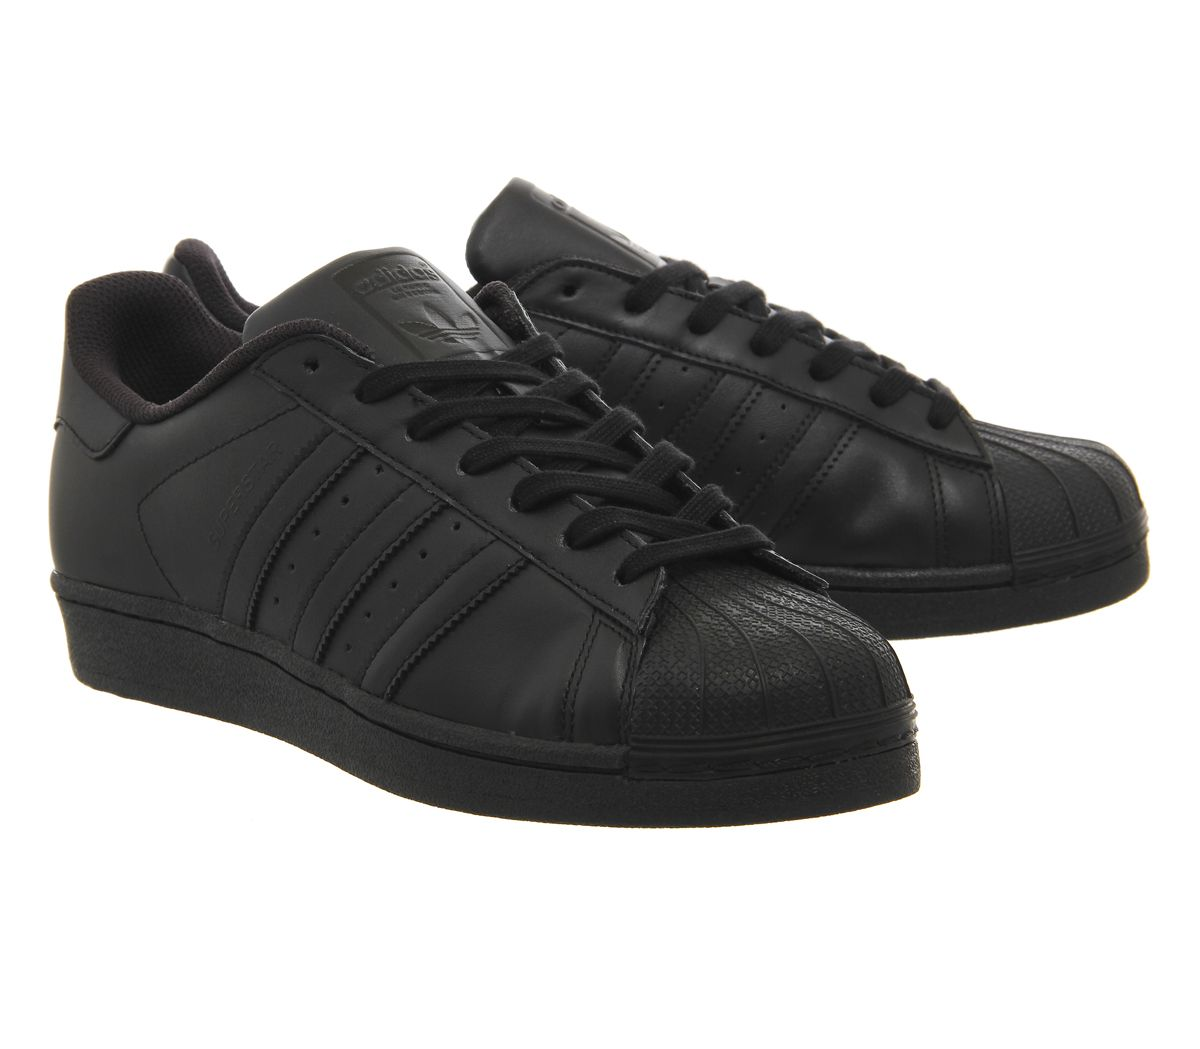 77b0d562234 adidas Superstar 1 Black Mono Foundation - His trainers